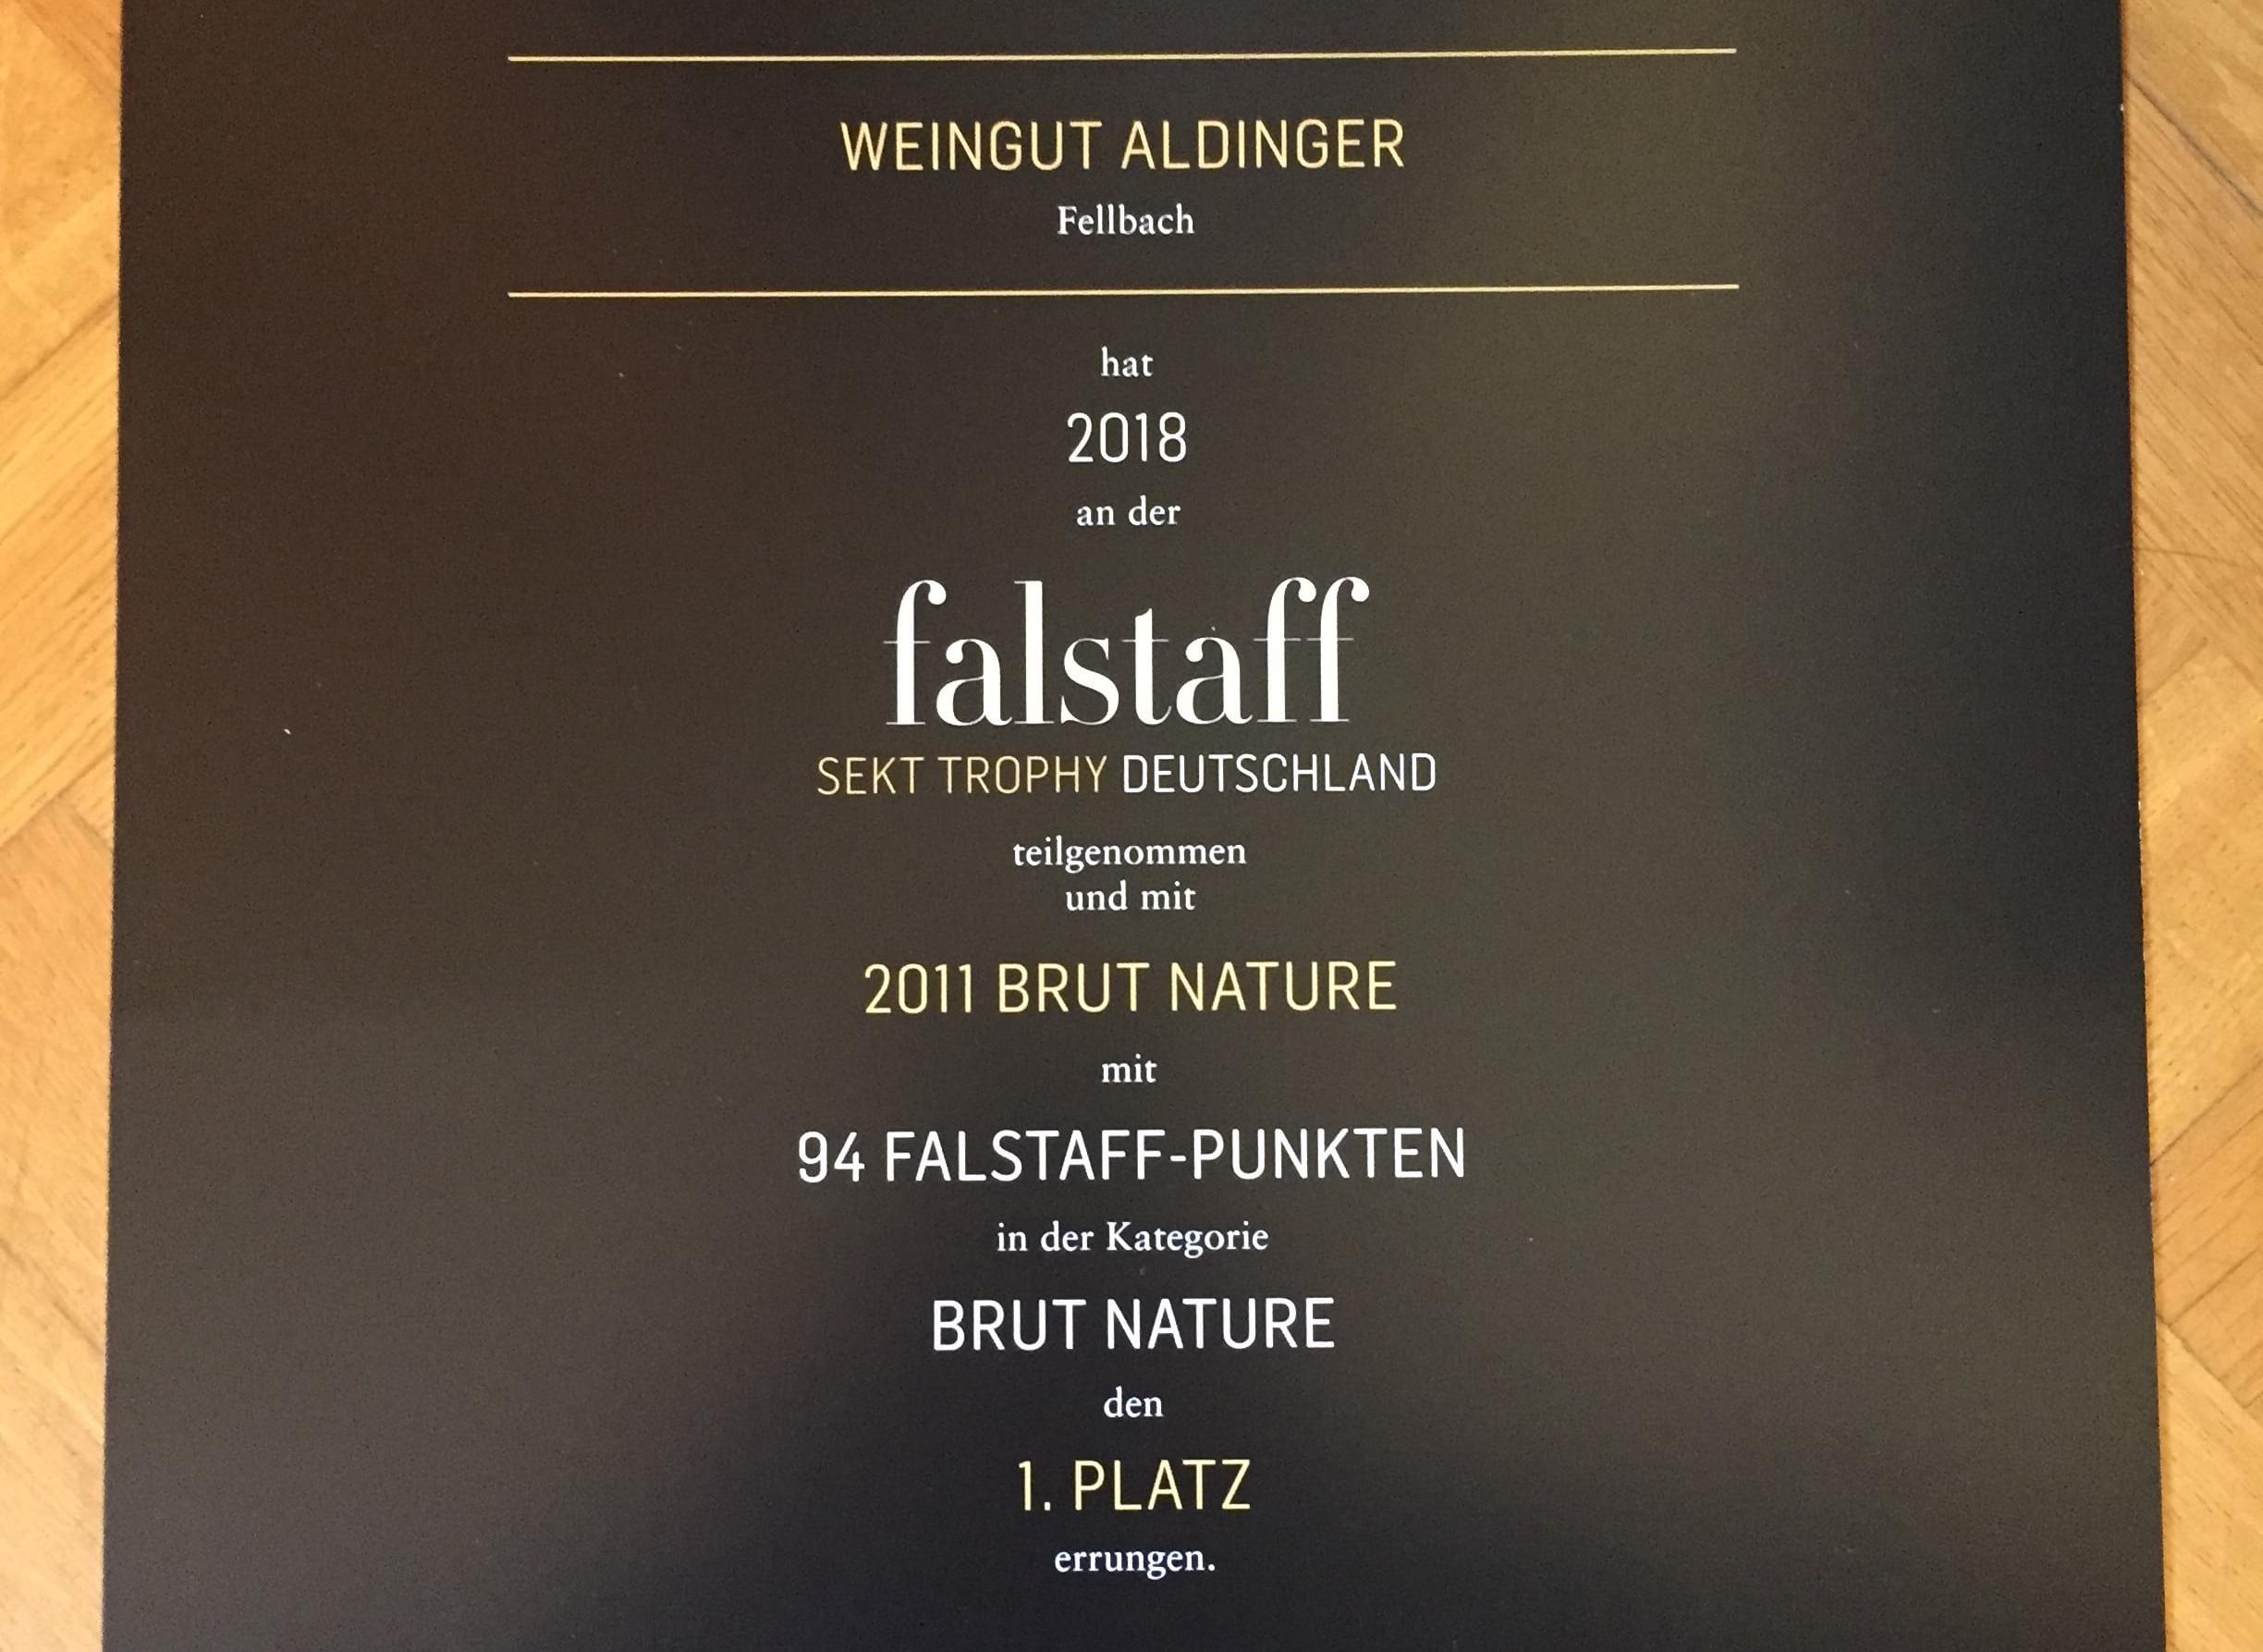 FALSTAFF 2018 2011 BRUT NATURE